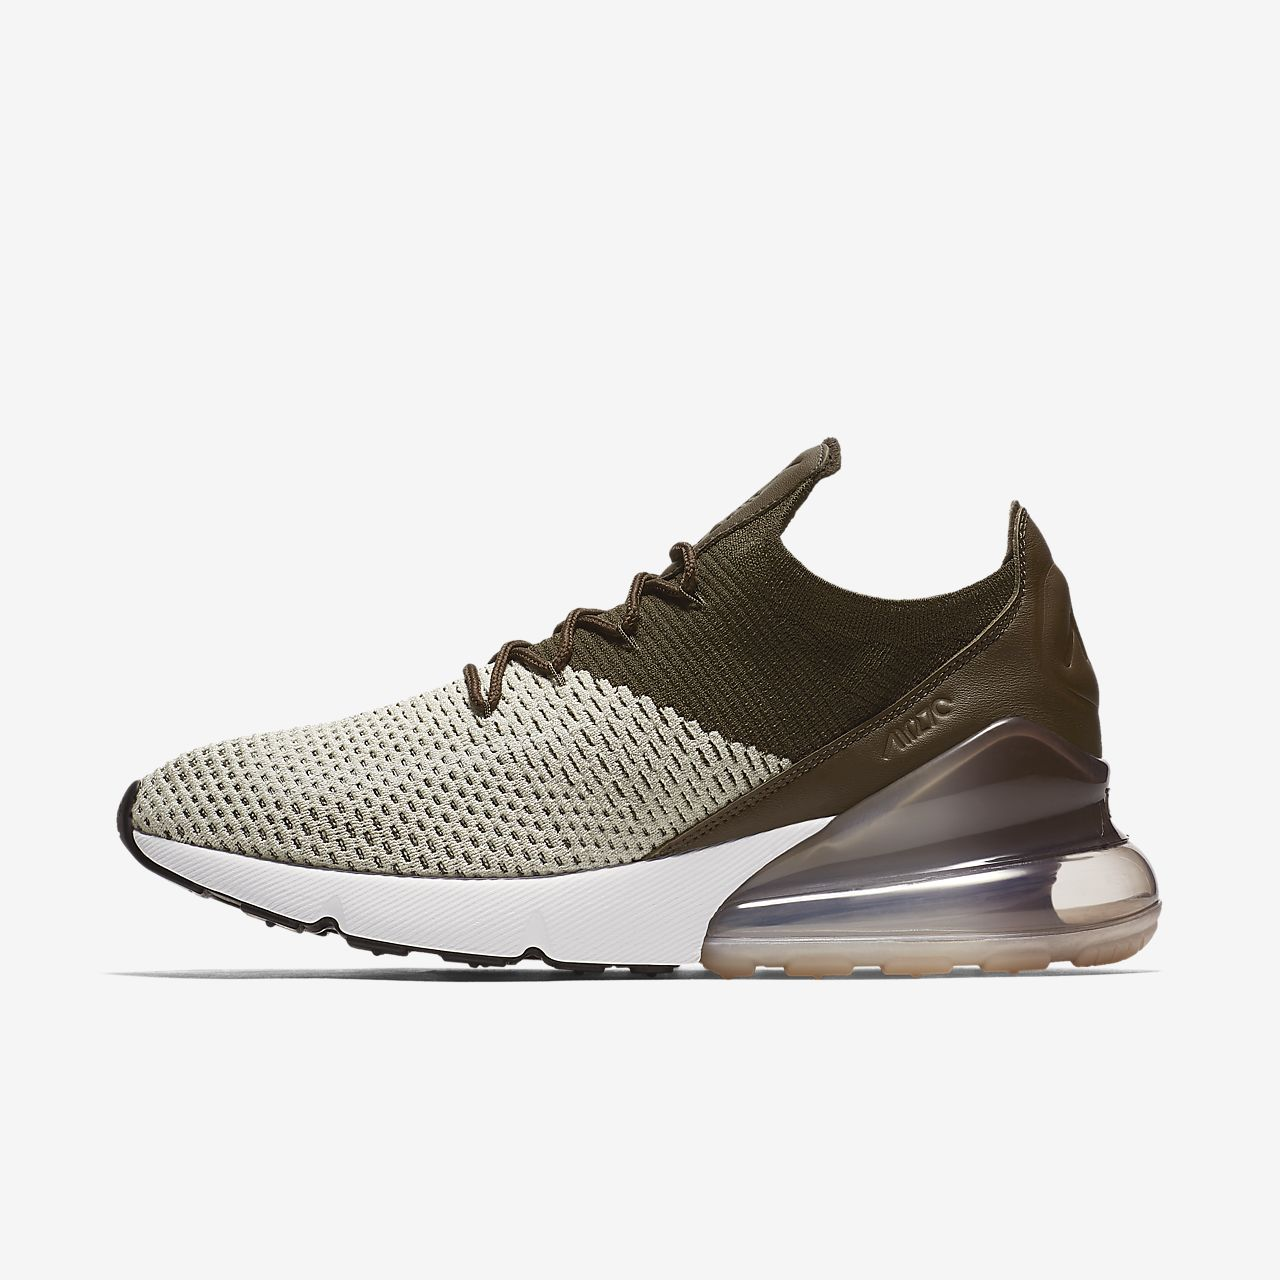 big sale 43251 c4f09 clearance chaussure nike air max 270 flyknit pour homme f3b01 86b14